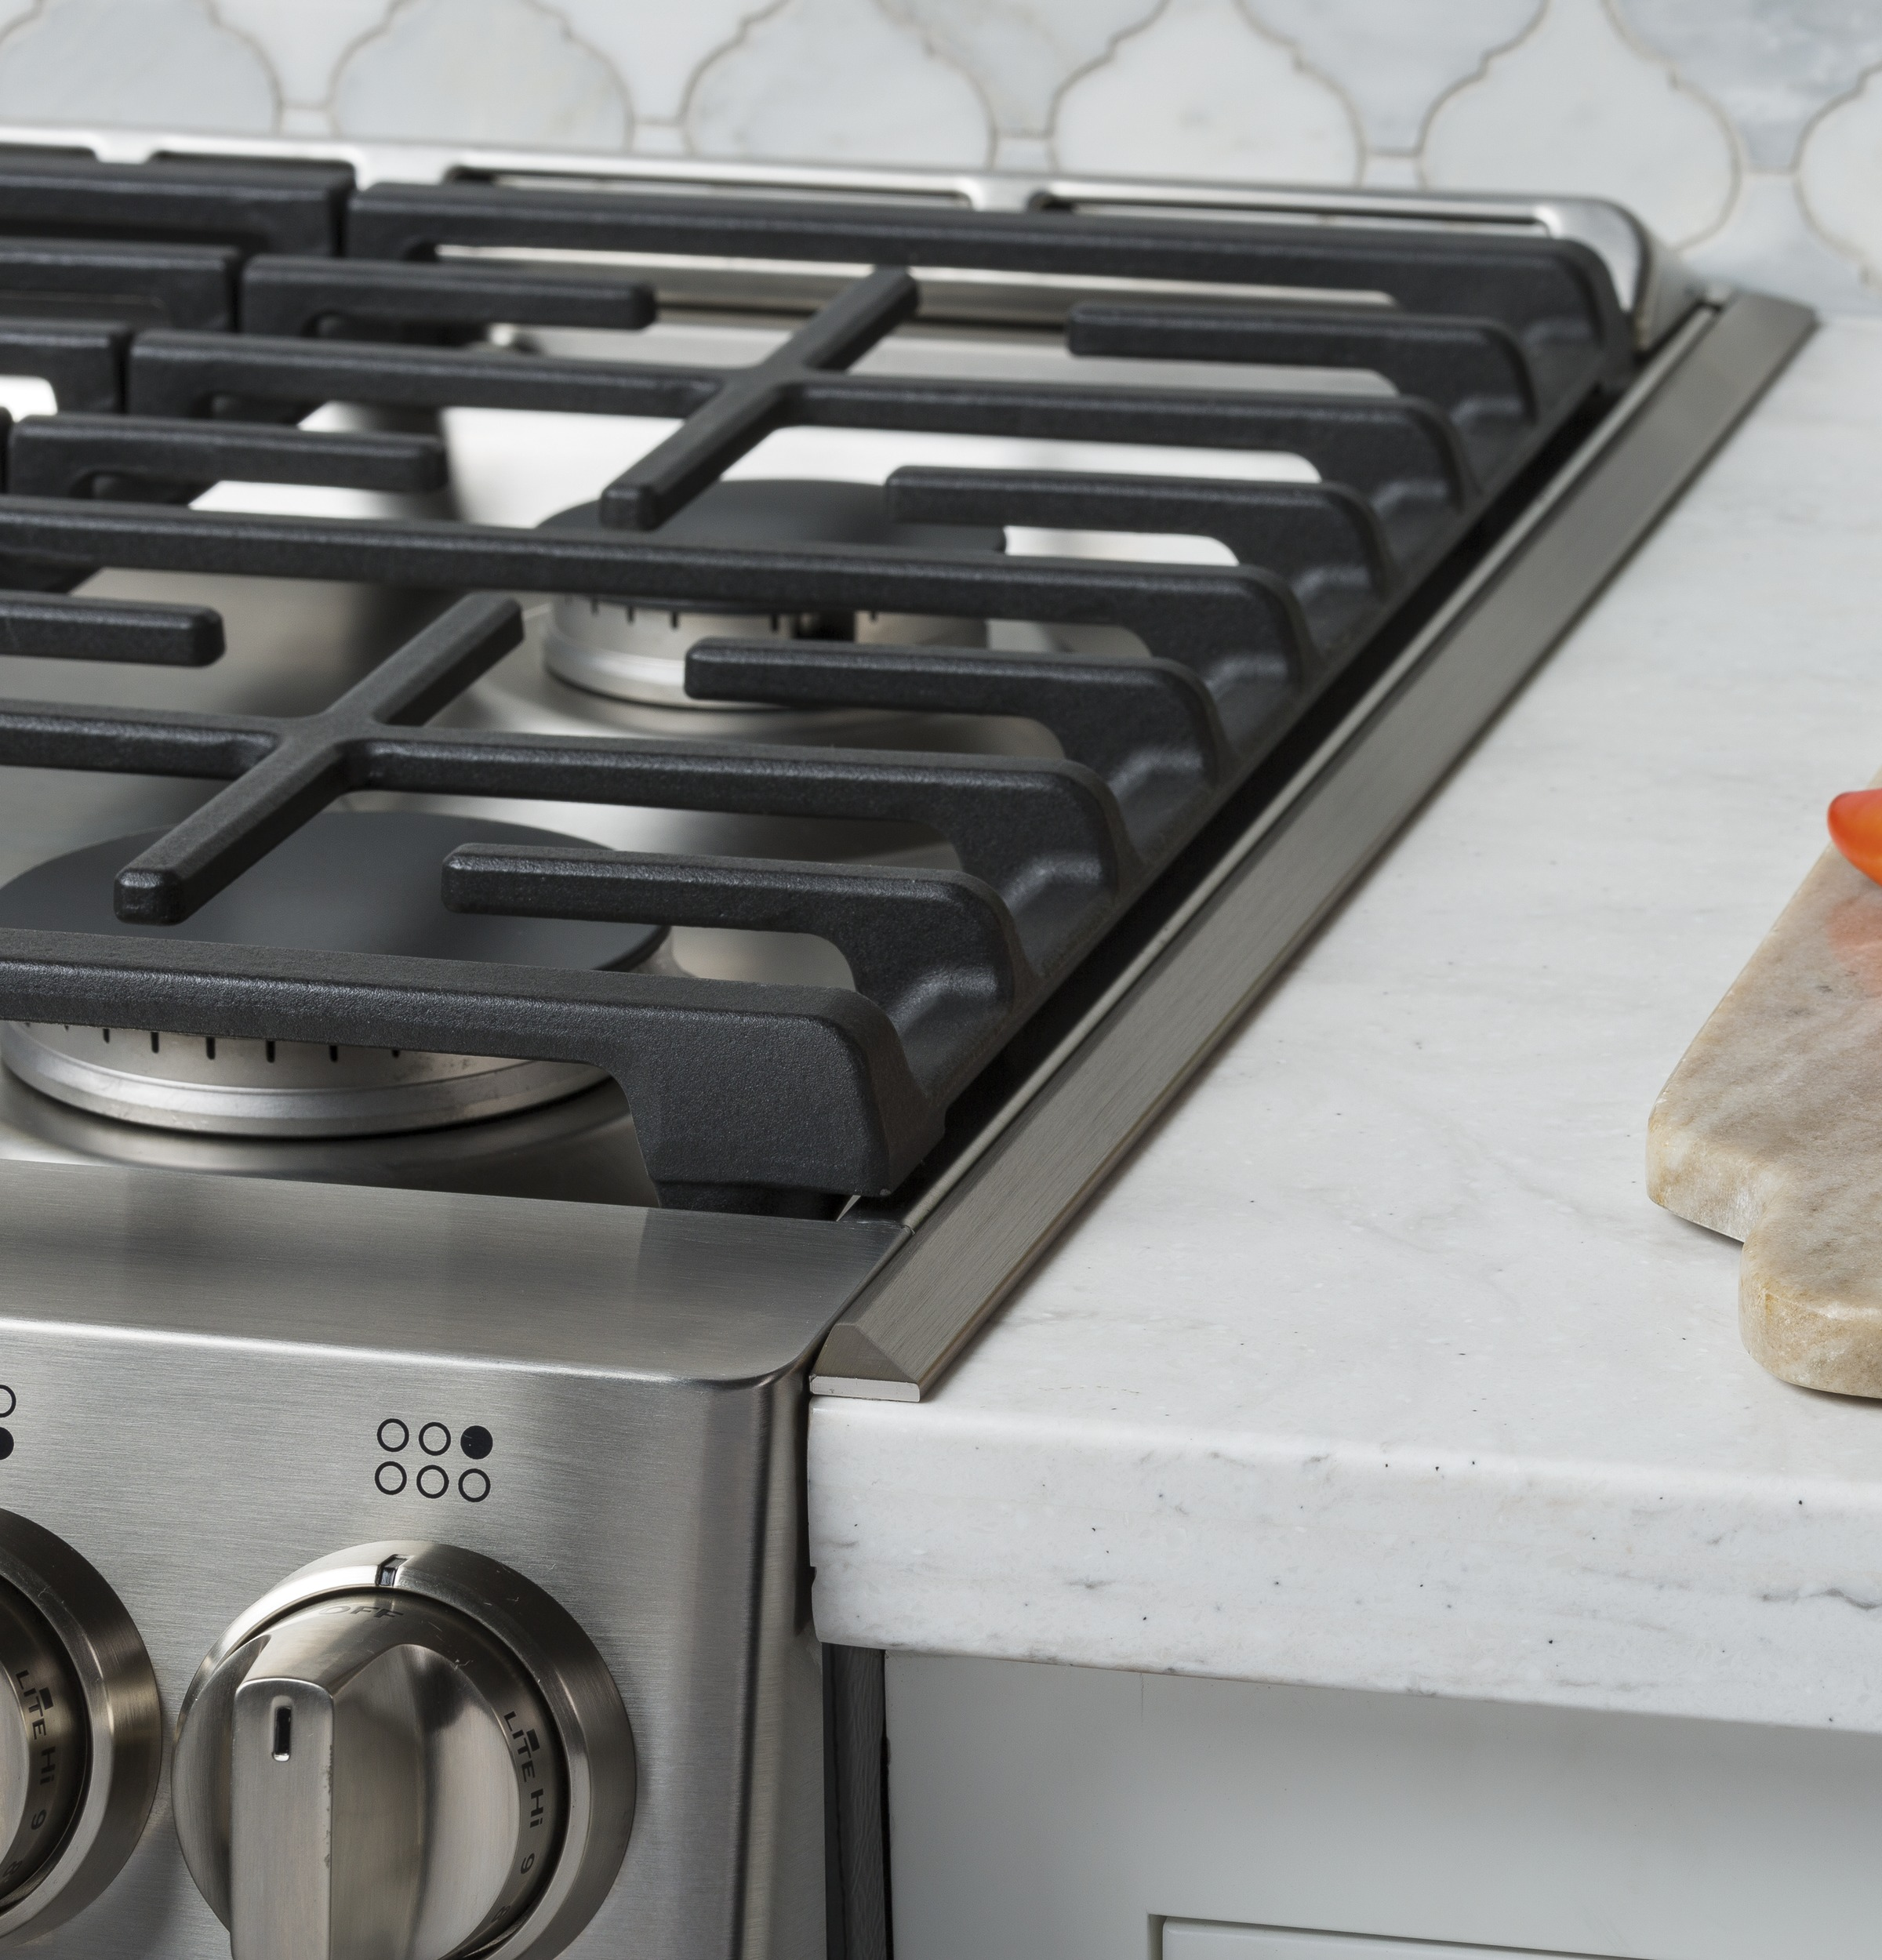 series ge appliances image product dispatcher gea drawer caf appliance name specs requesttype warming